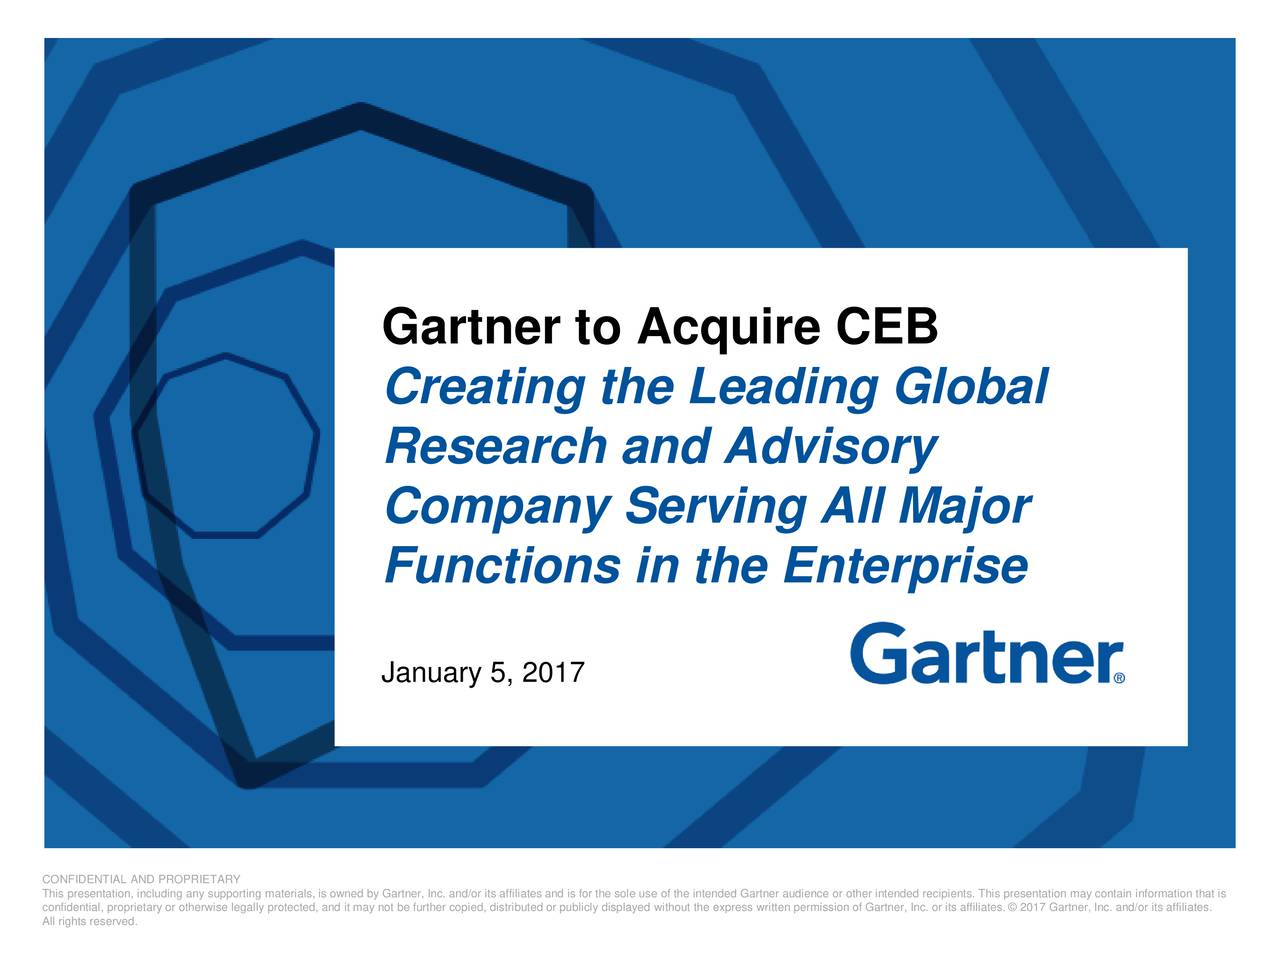 Creating the Leading Global Research and Advisory Company Serving All Major Functions in the Enterprise January 5, 2017 confidential, proprietary or otherwise legally protected, and it may not be further copied, distributed or publicly displayed without the express written permission of Gartner, Inc. or its affiliates.  2017 Gartner, Inc. and/or its affiliates. All rights reserved.